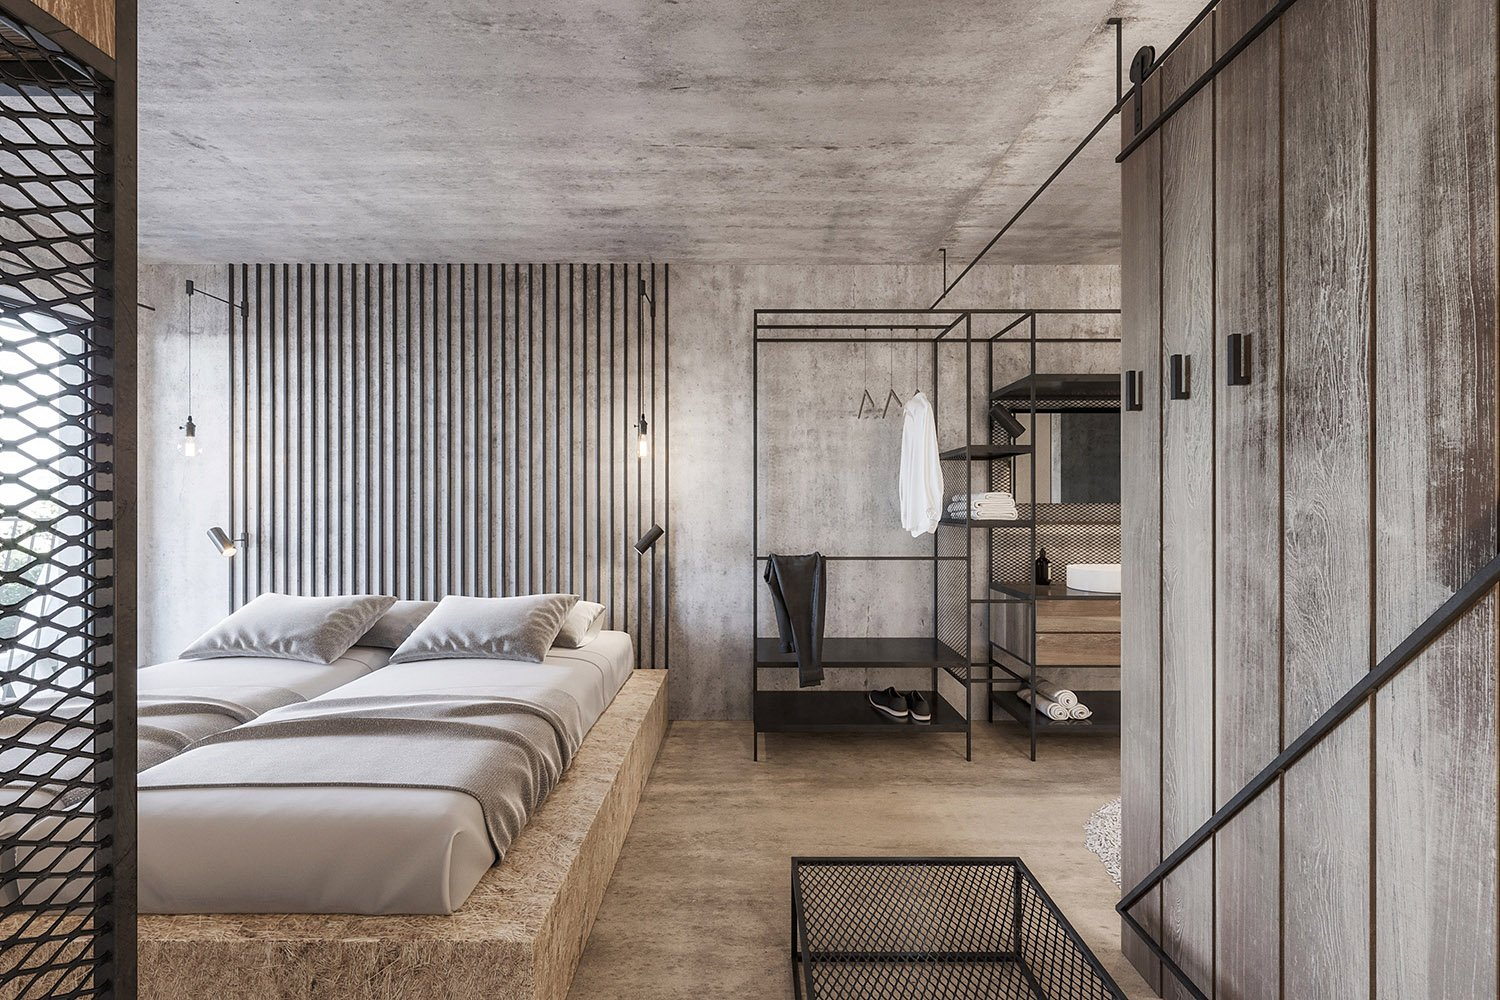 enota maestoso hotel & spa 07 Studio Spacer (visualisations)}